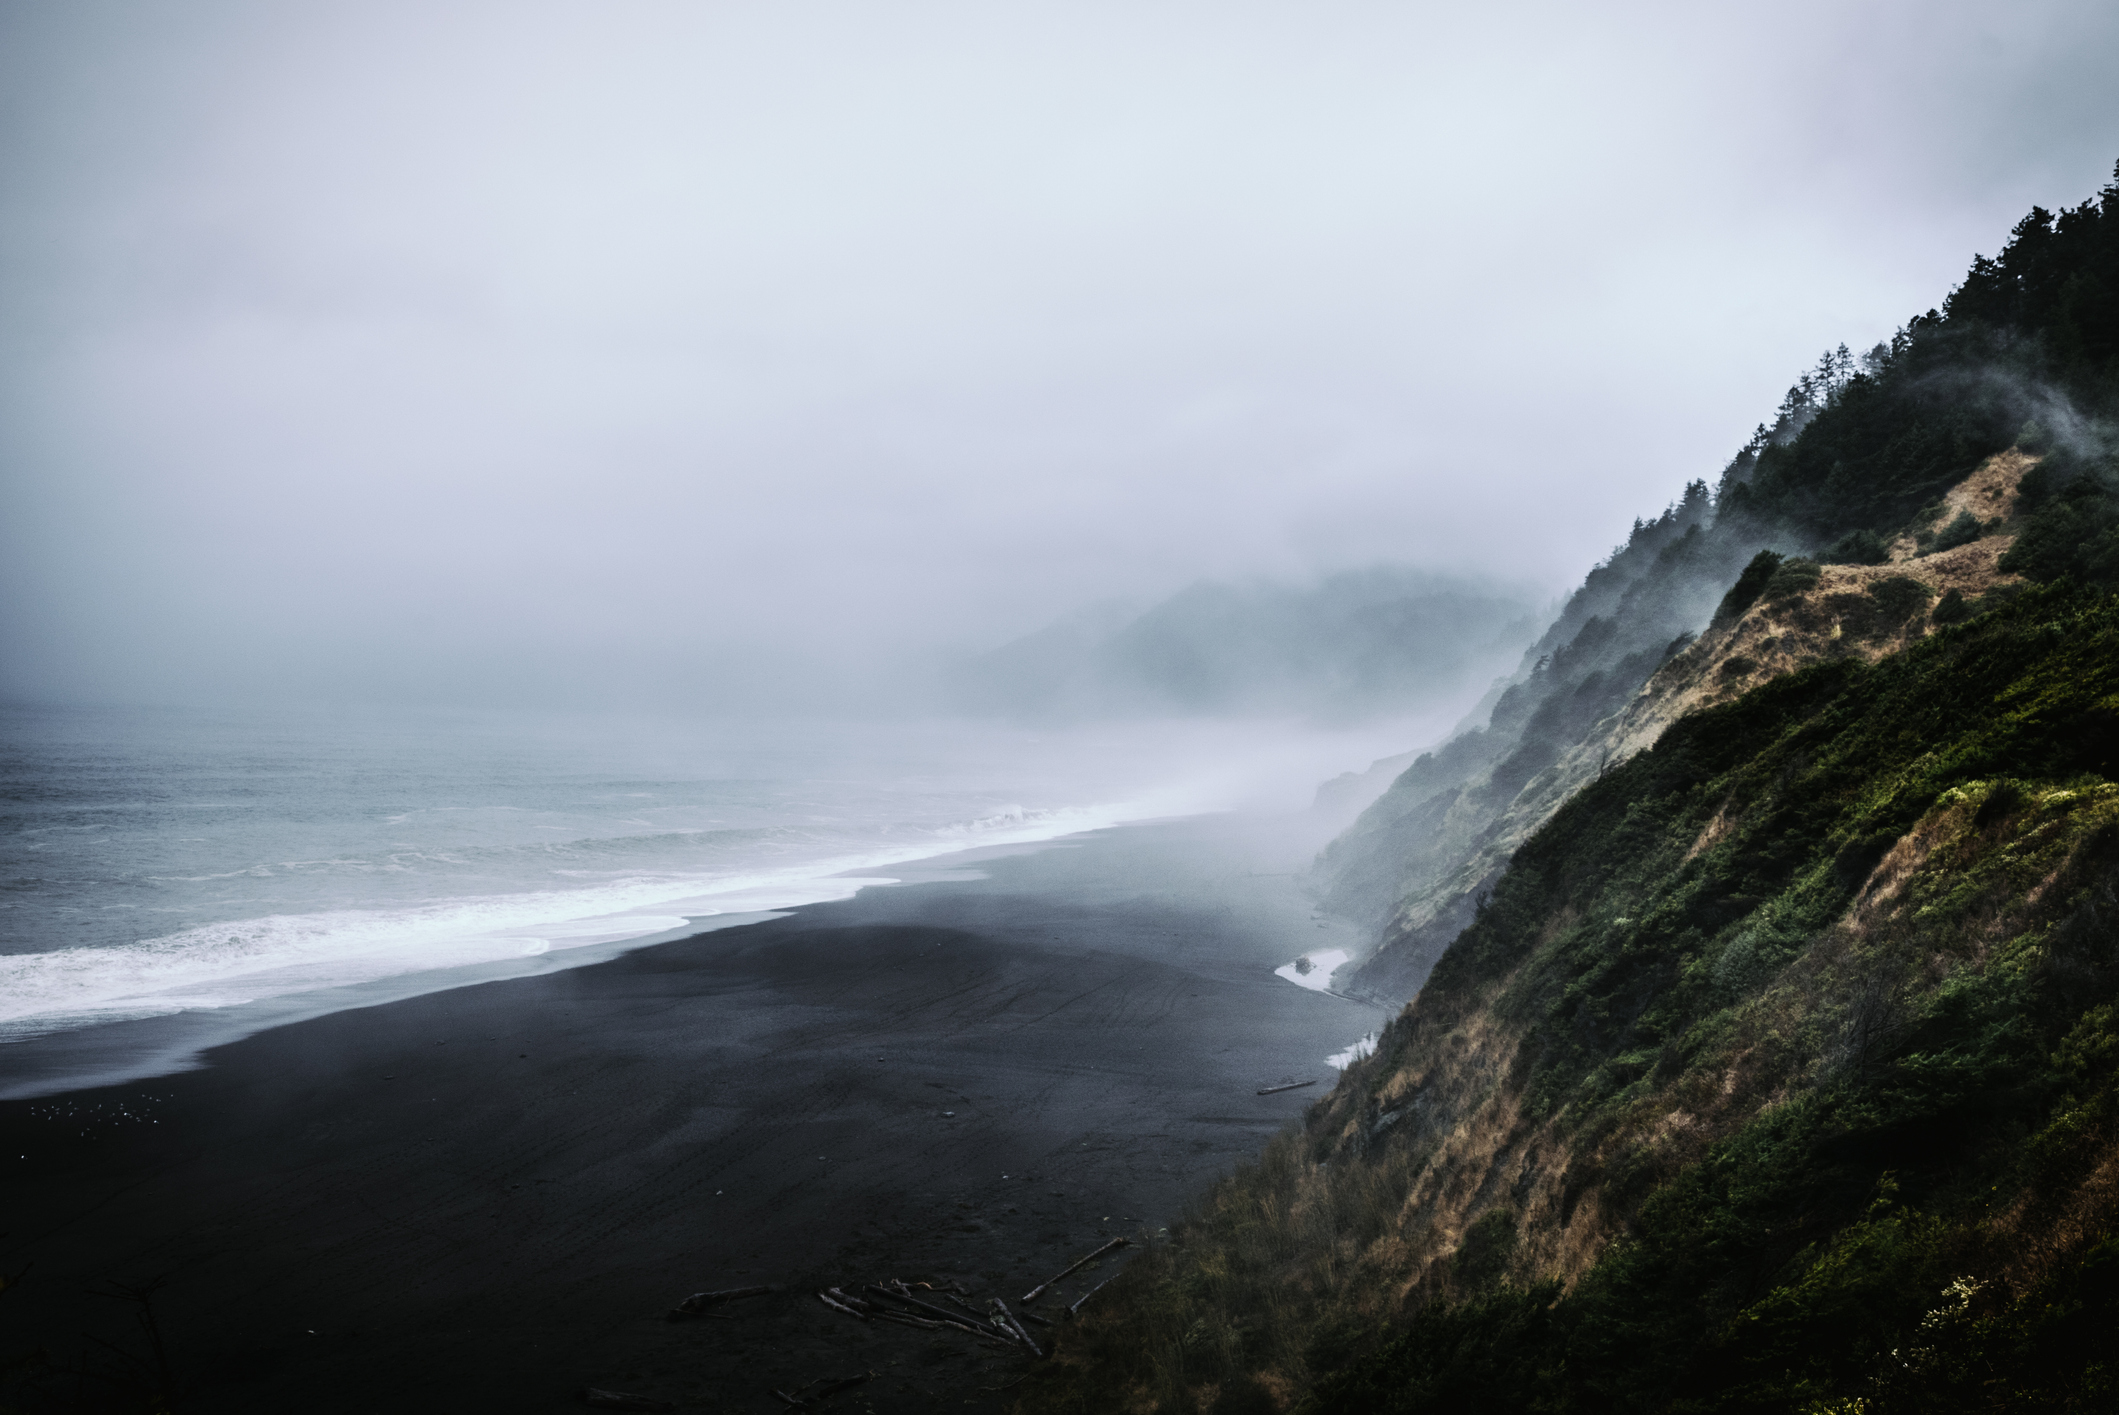 Black Sands Beach Is A Unique And Beautiful Destination On The Northern California Coast